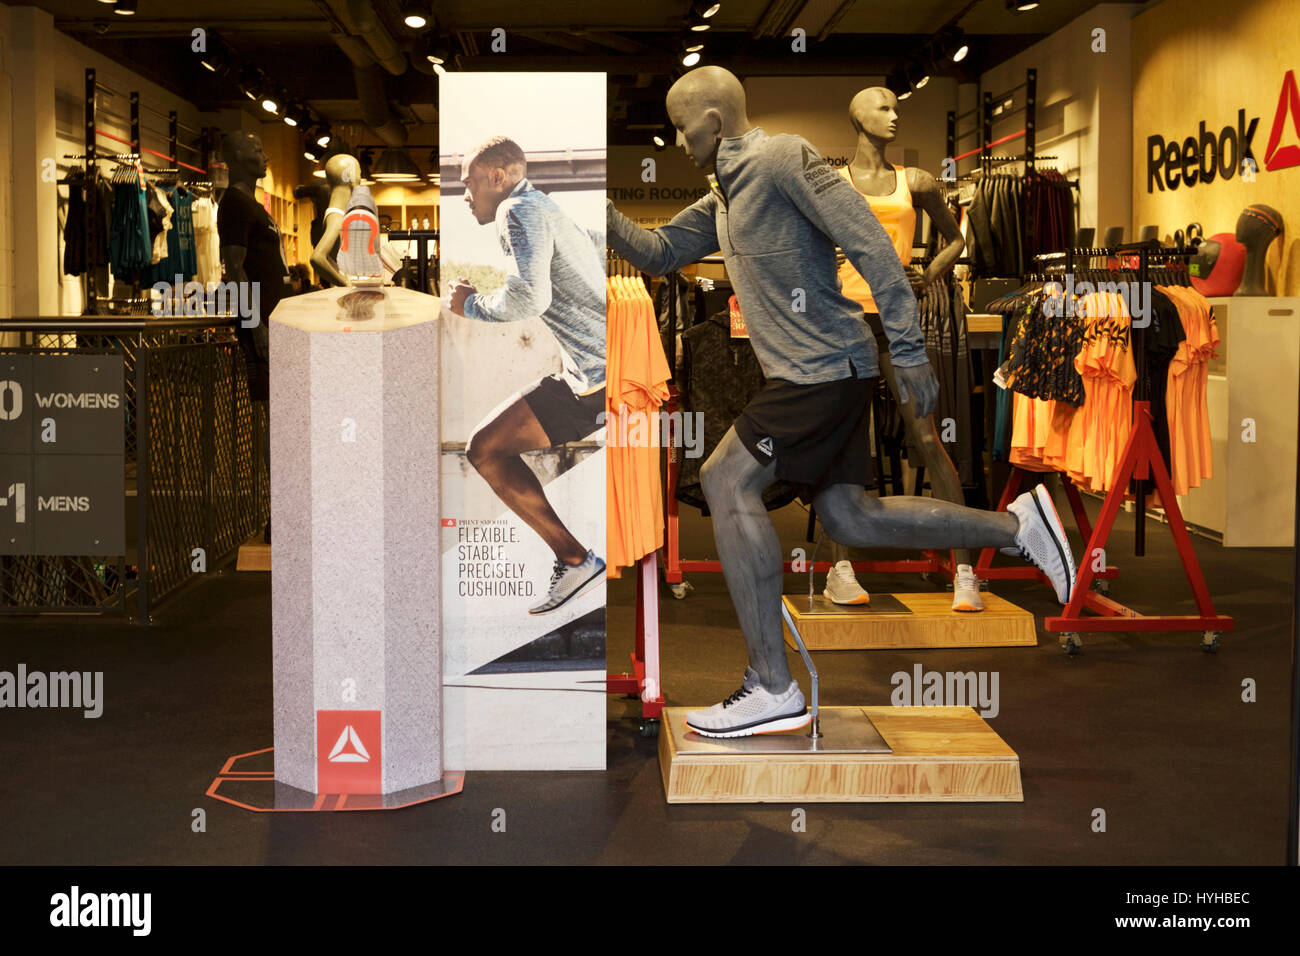 Sports Store Athletic Sports Stock Photos & Sports Store Athletic ...